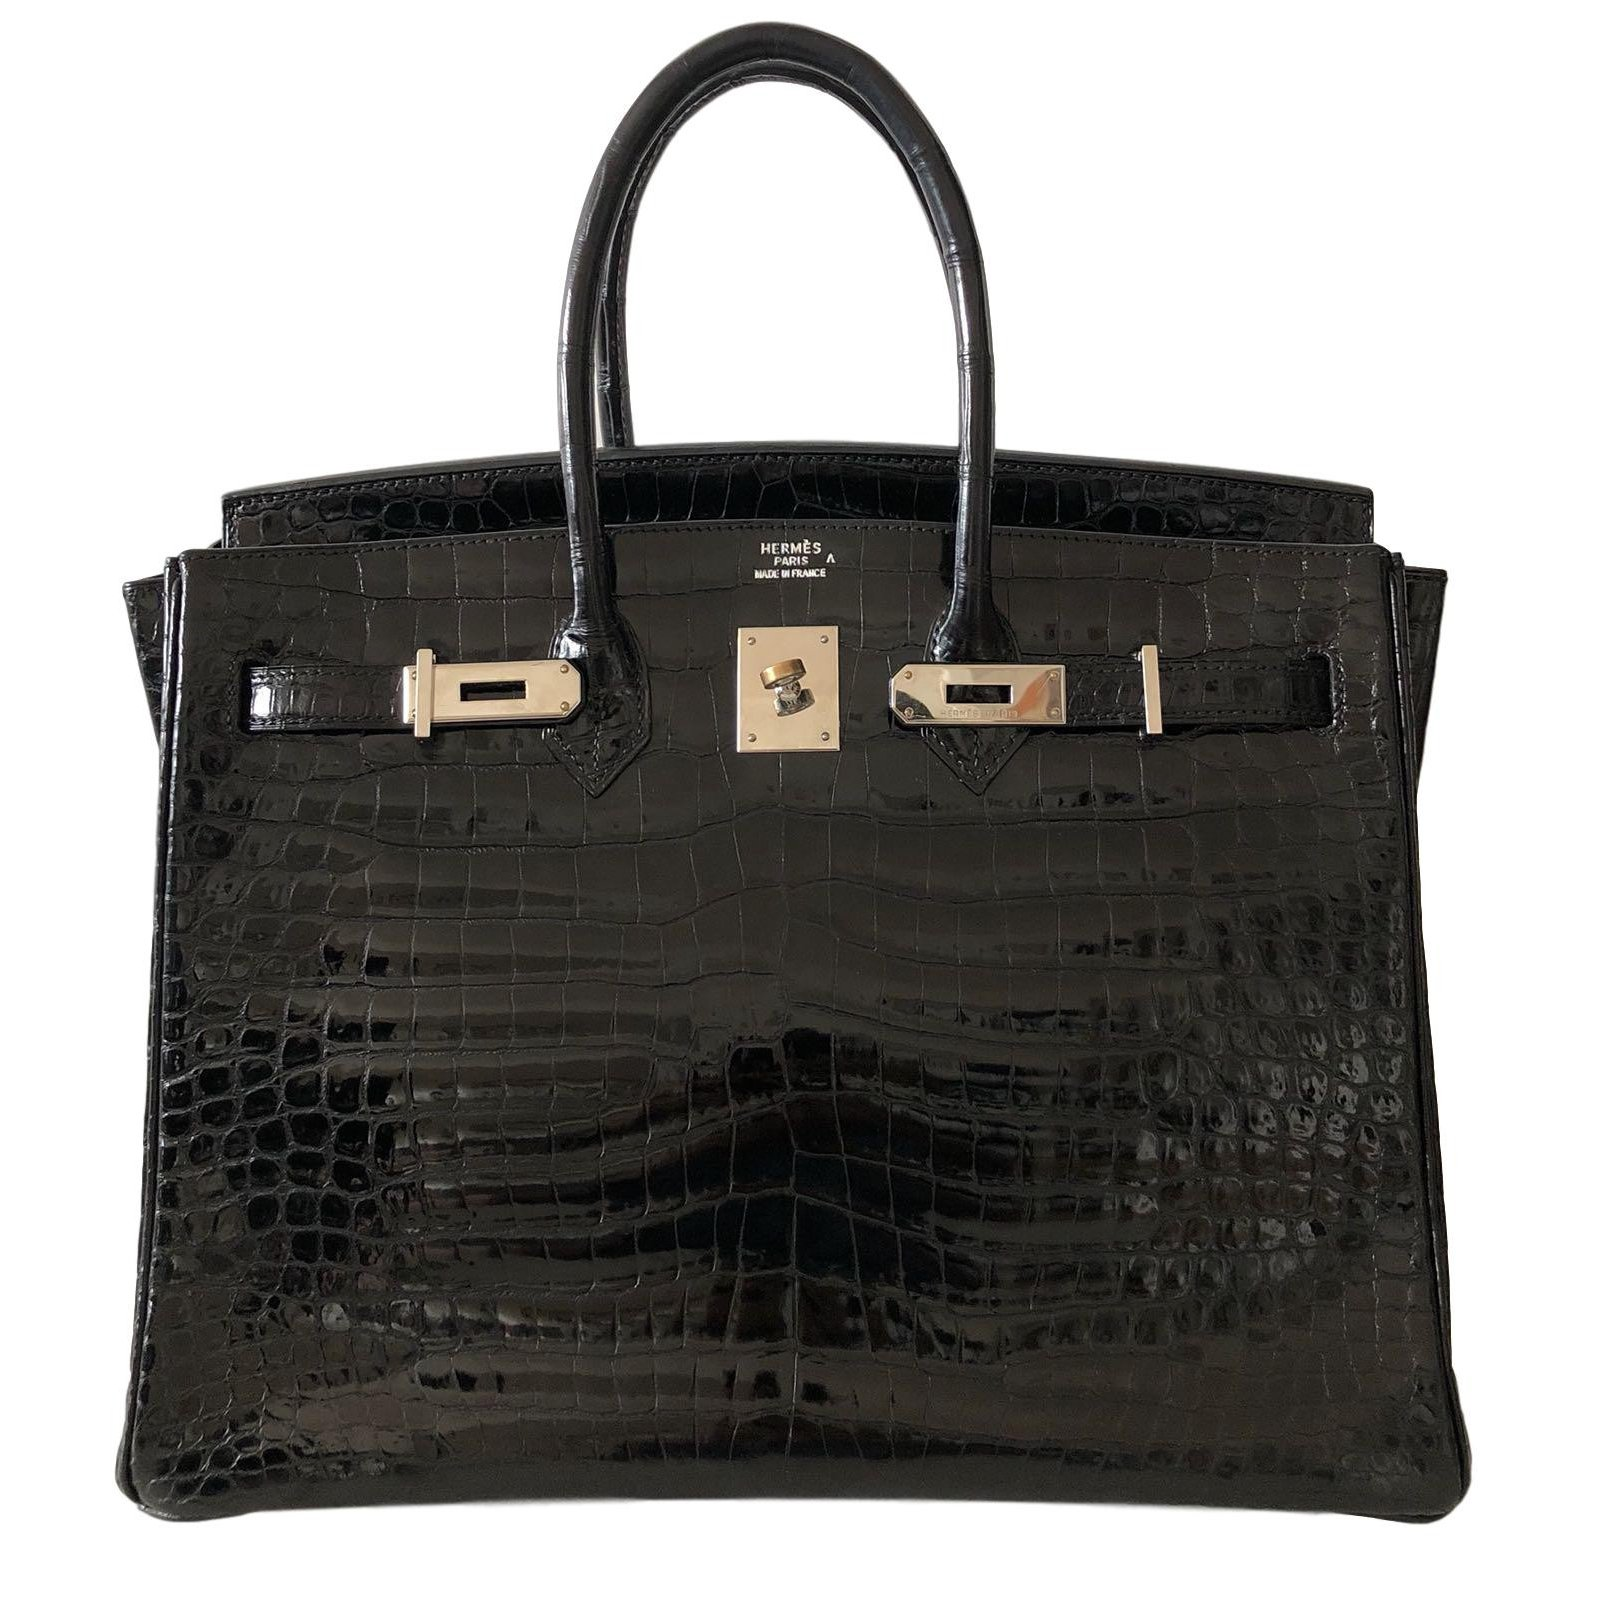 849a3327827d ... discount code for hermès birkin 35 handbags exotic leather black  ref.78509 79c20 92872